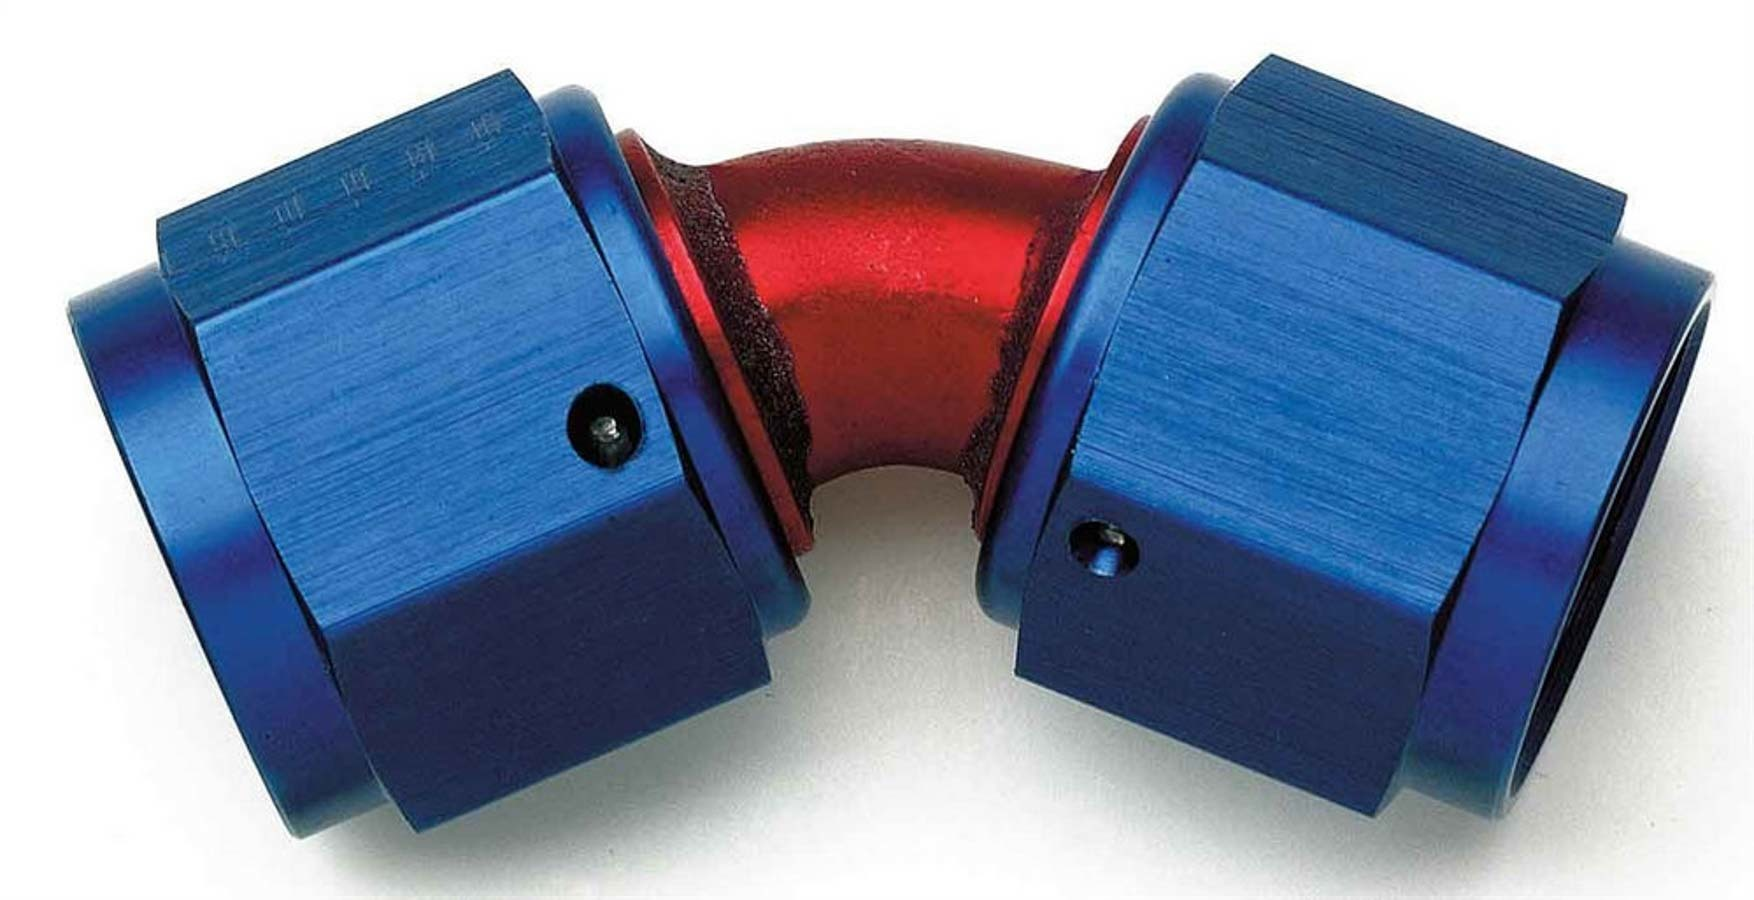 Aeroquip FCM2973 Fitting, Adapter, 45 Degree, 10 AN Female Swivel to 10 AN Female Swivel, Aluminum, Blue / Red Anodized, Each